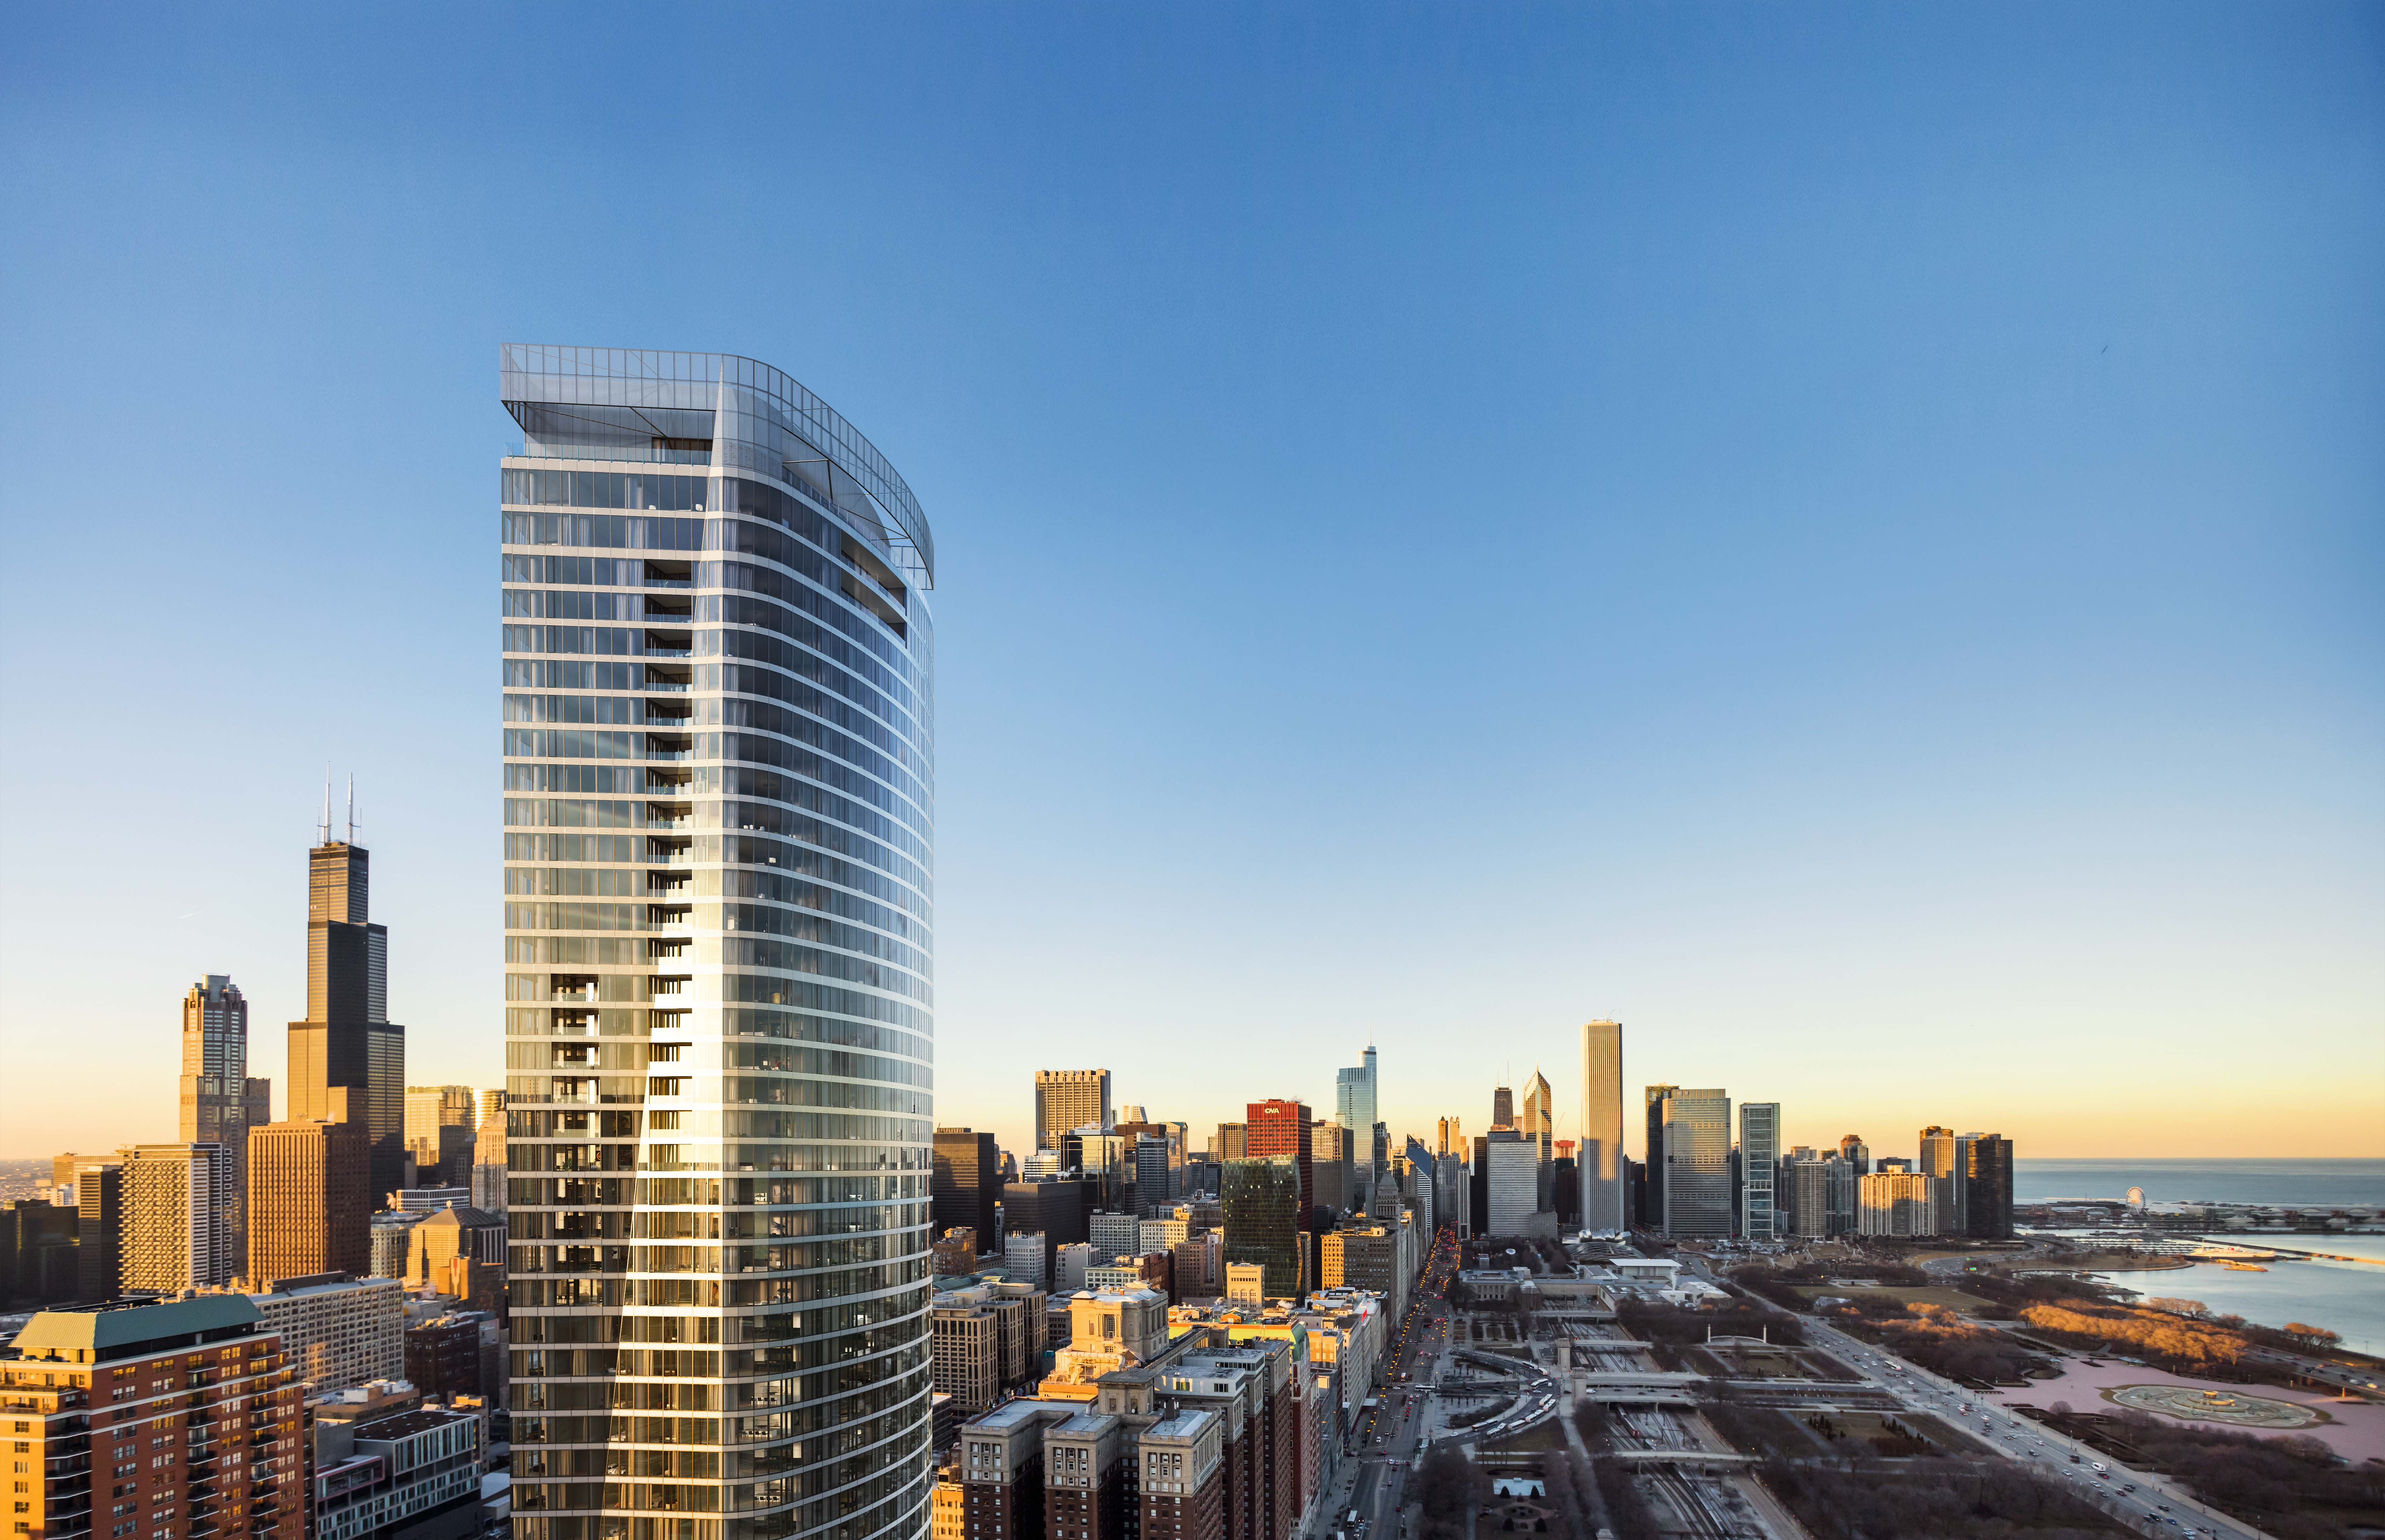 A rendering of the top of a glassy contemporary tower standing next to a park. A row of tall buildings and a large body of water can be seen in the distance.